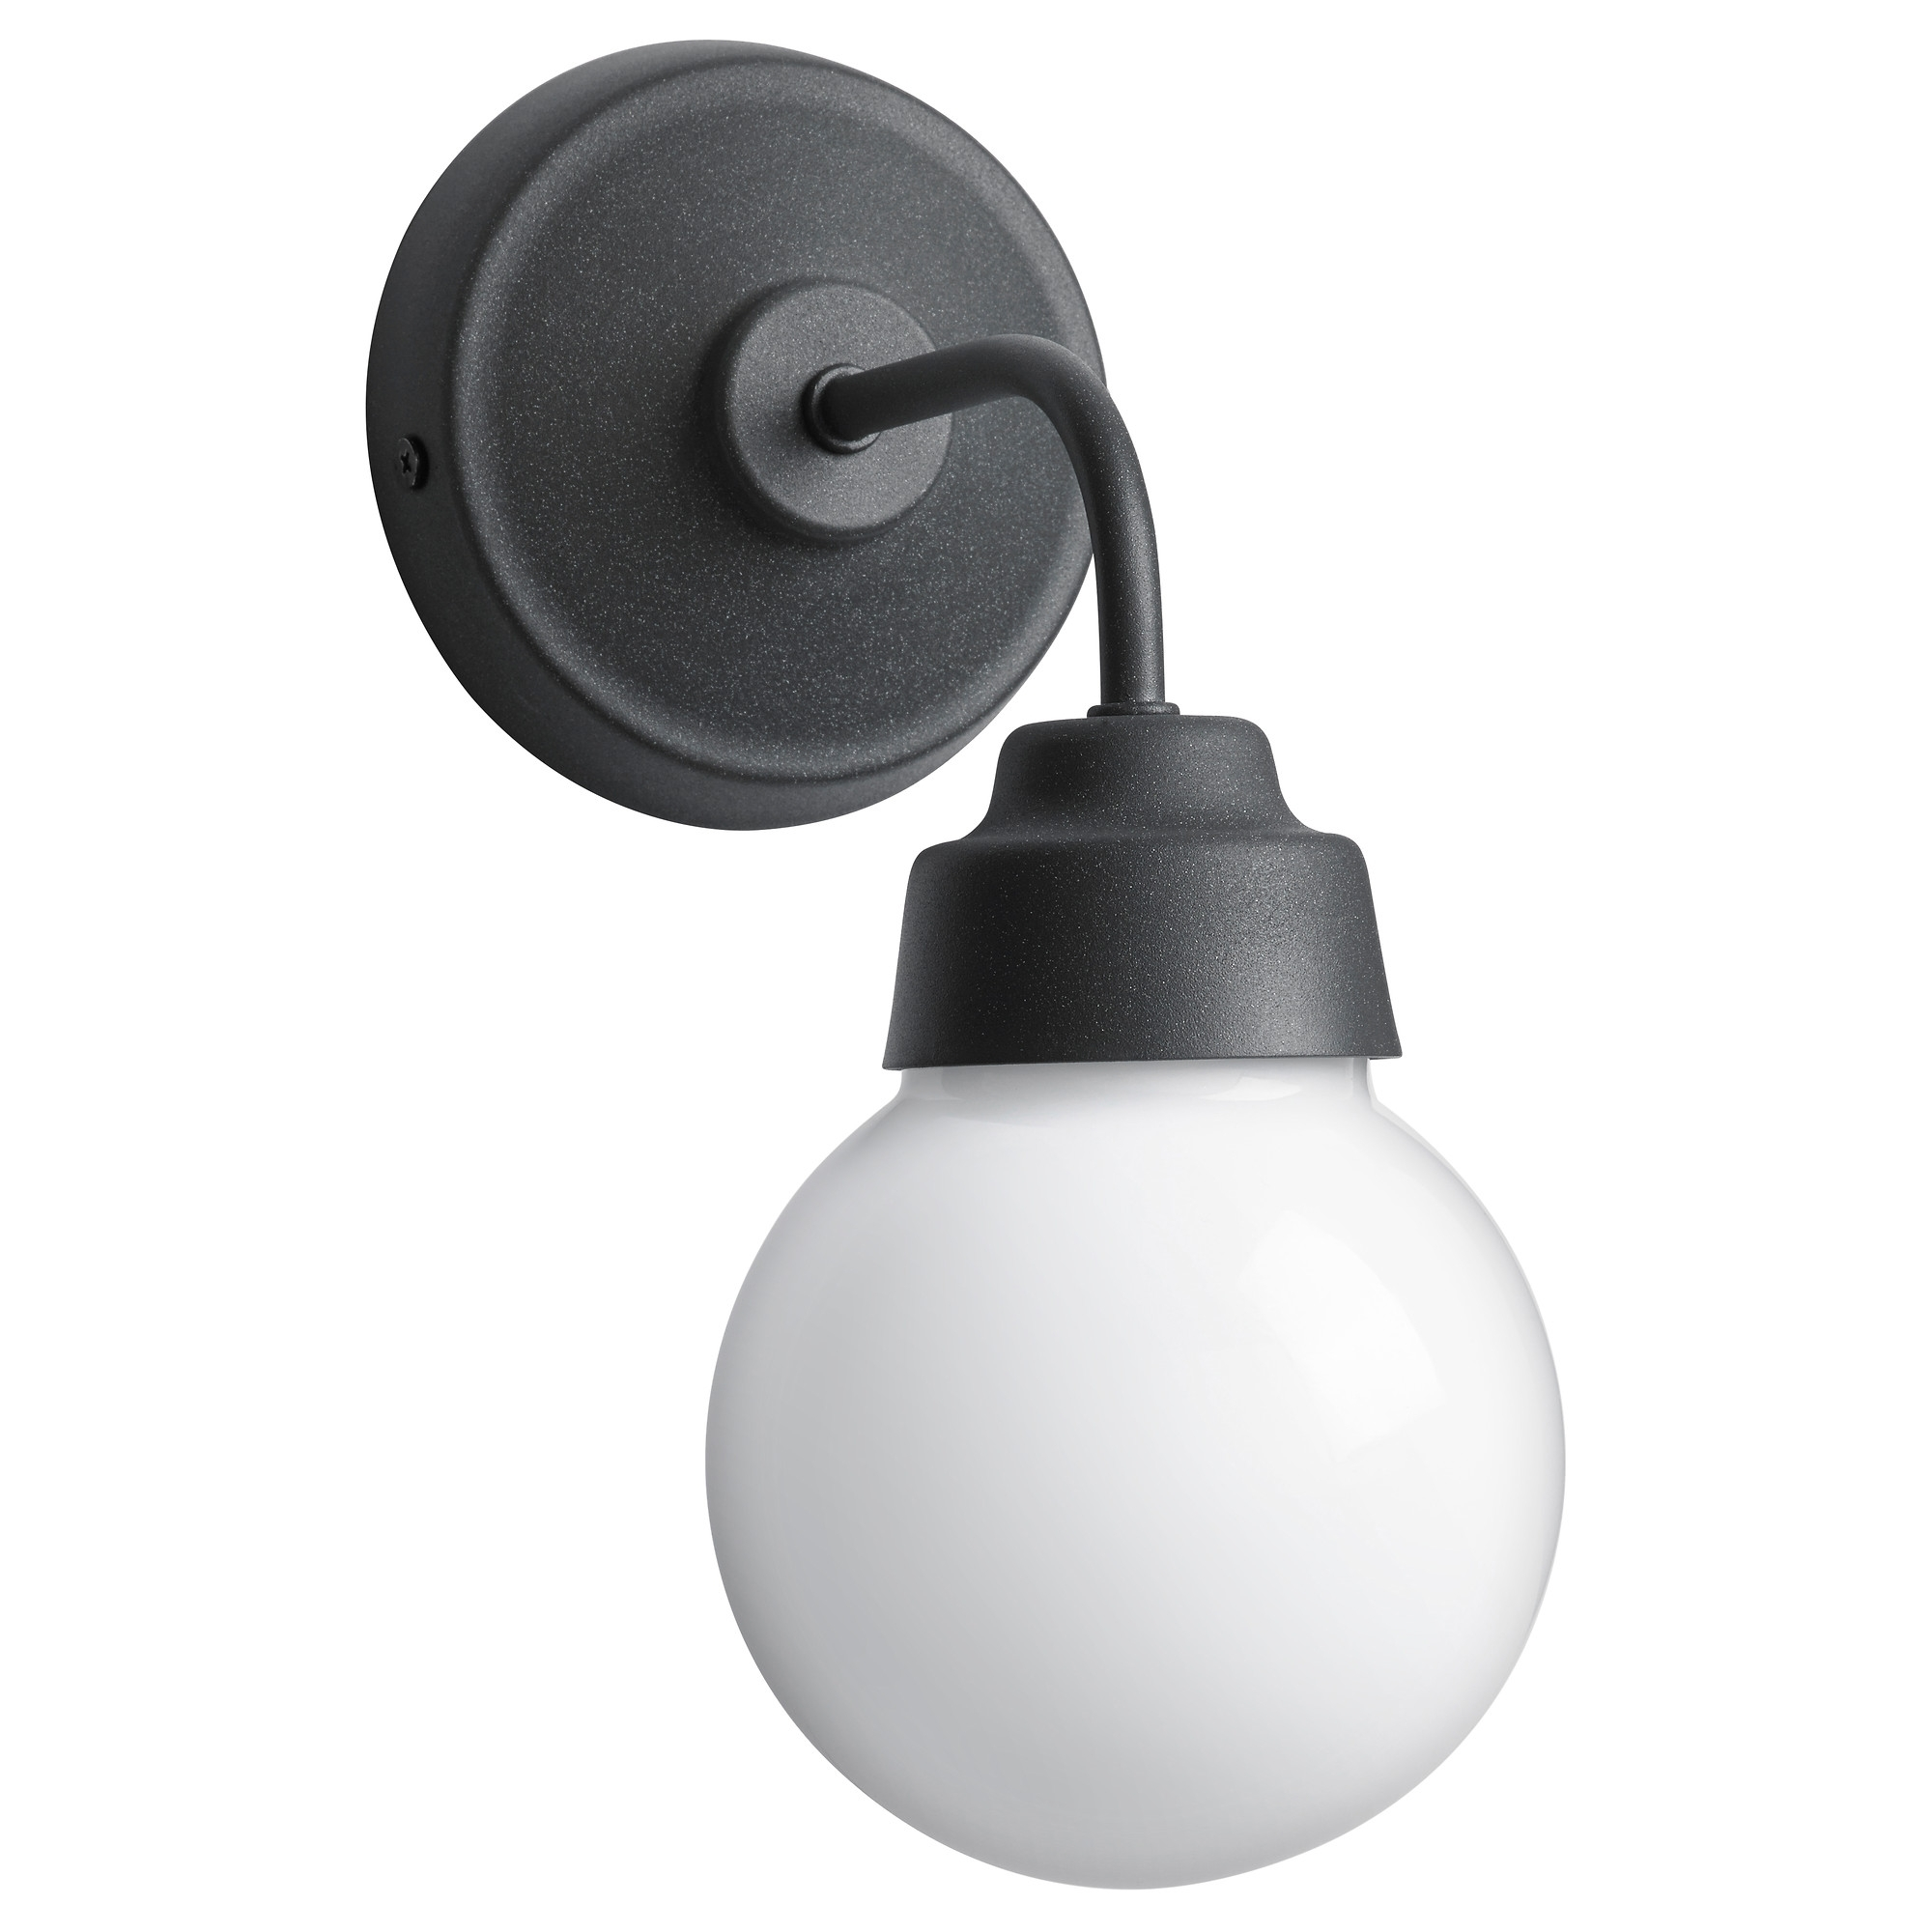 Current Ideas & Tips: Stunning Ikea Plug In Wall Sconce For Home Decor Ideas With Outdoor Wall Lights At Ikea (View 1 of 20)